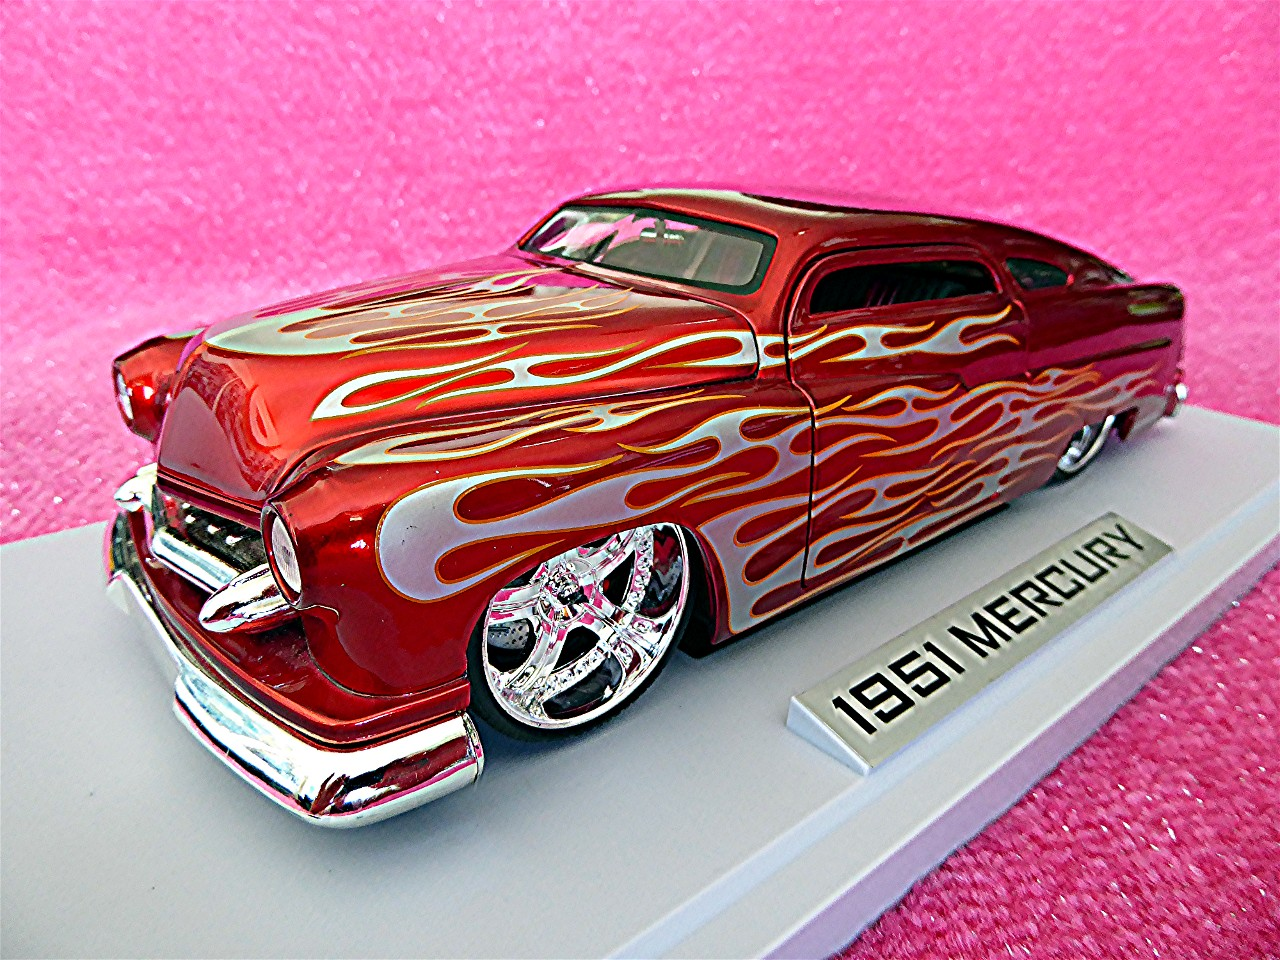 1:18 Mercury Dub City Flame rot-silber 1951